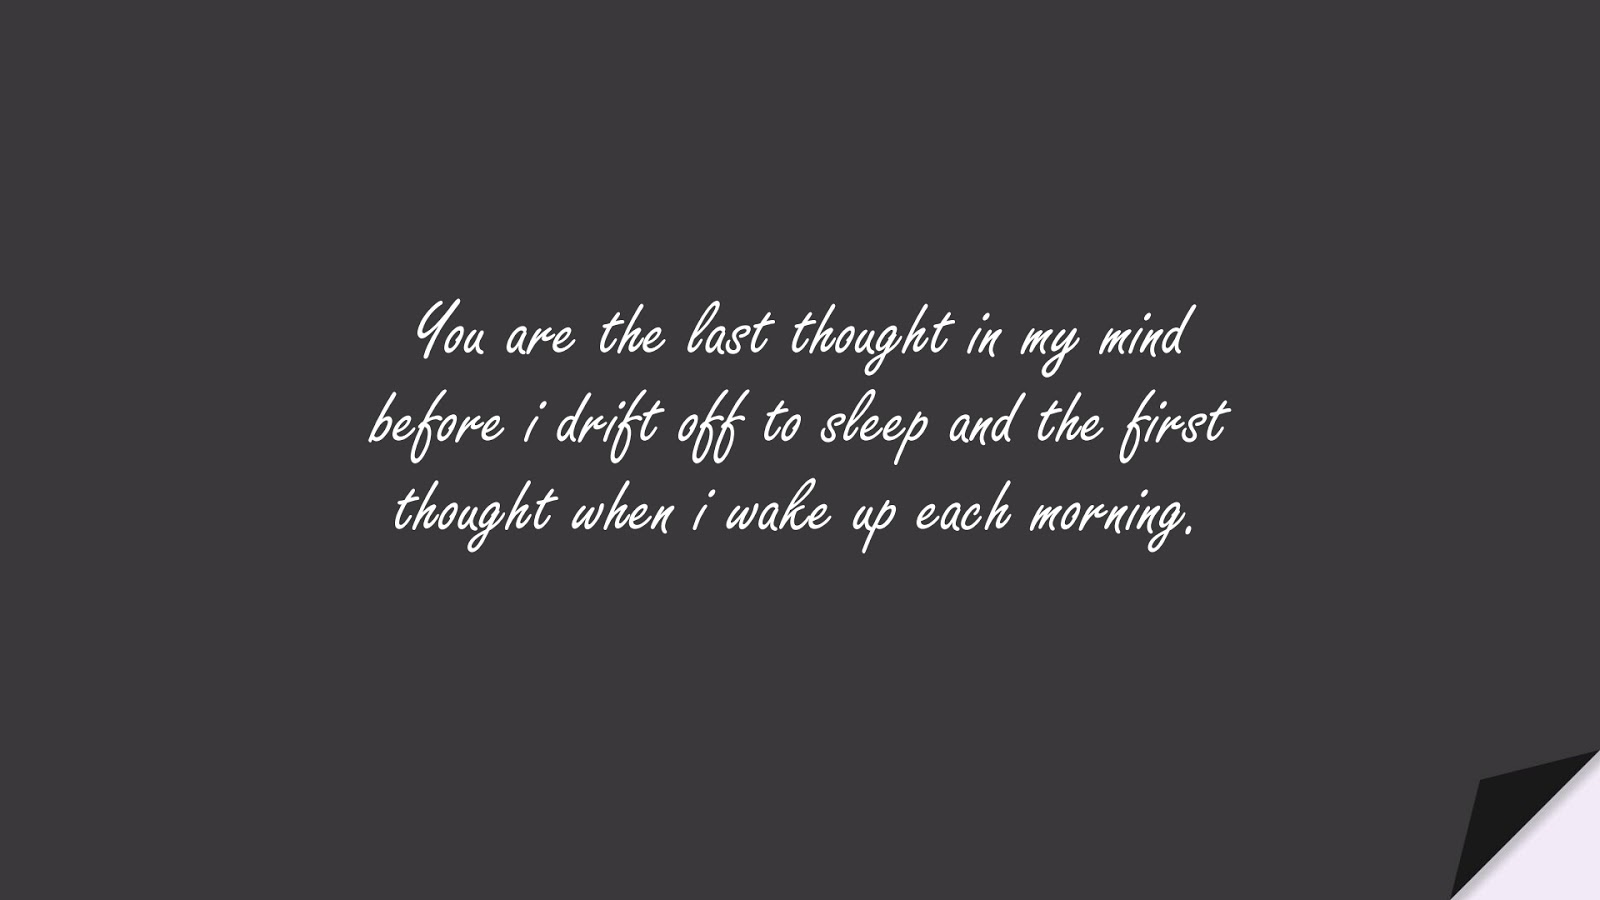 You are the last thought in my mind before i drift off to sleep and the first thought when i wake up each morning.FALSE